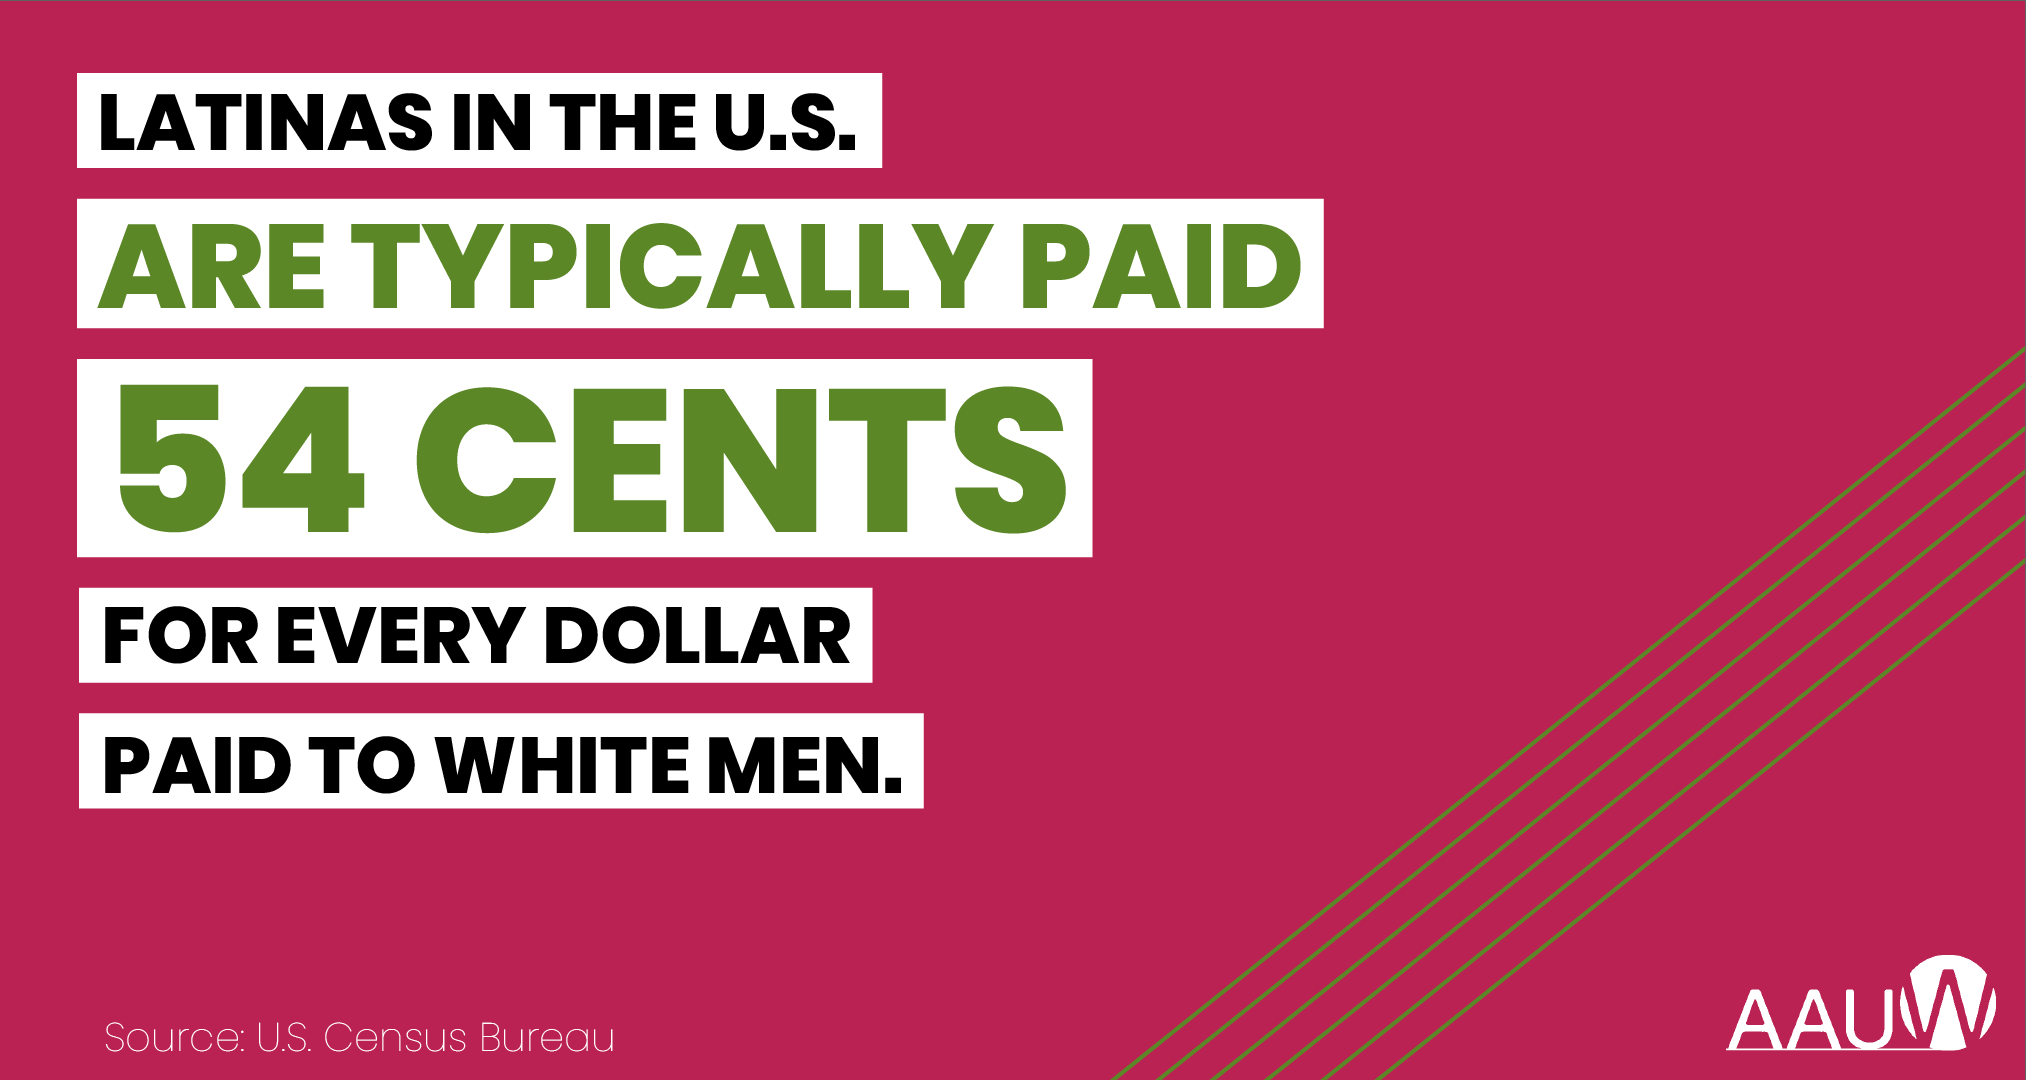 Latinas in the U.S. are typically paid 54 cents for every dollar paid to white men. Source: U.S. Census Bureau